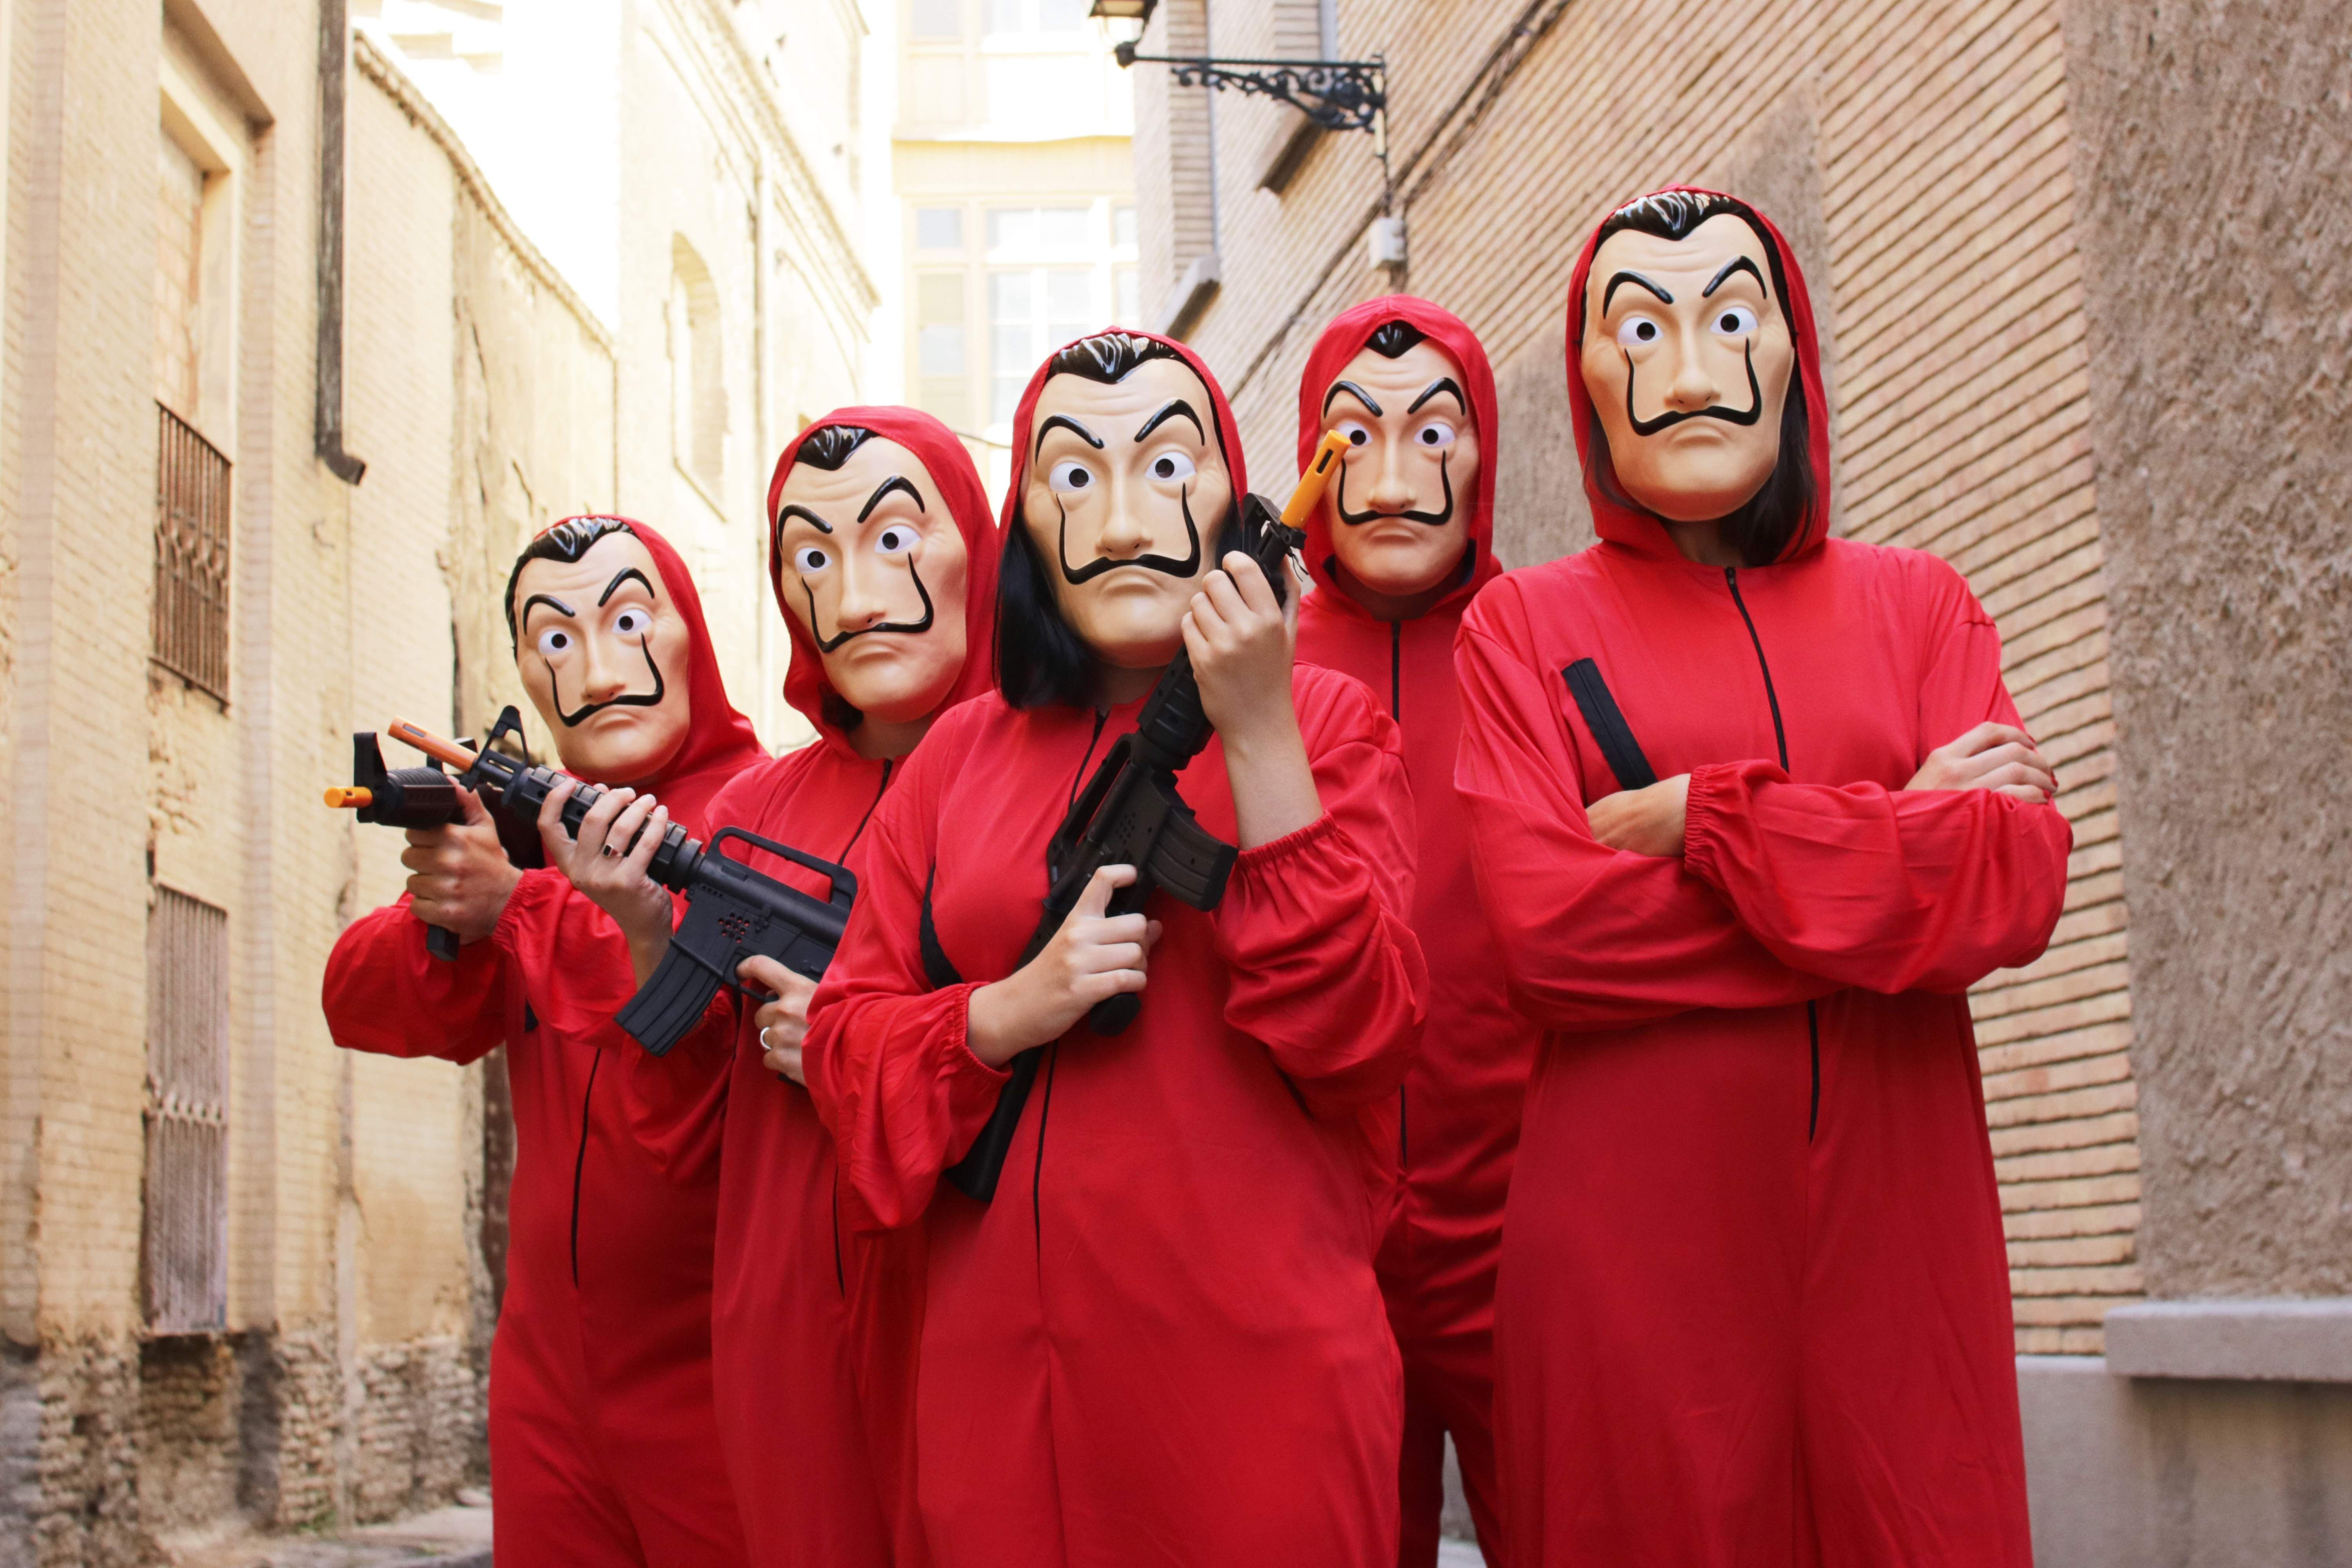 Funidelia money heist costumes from funidelia. available for worldwide